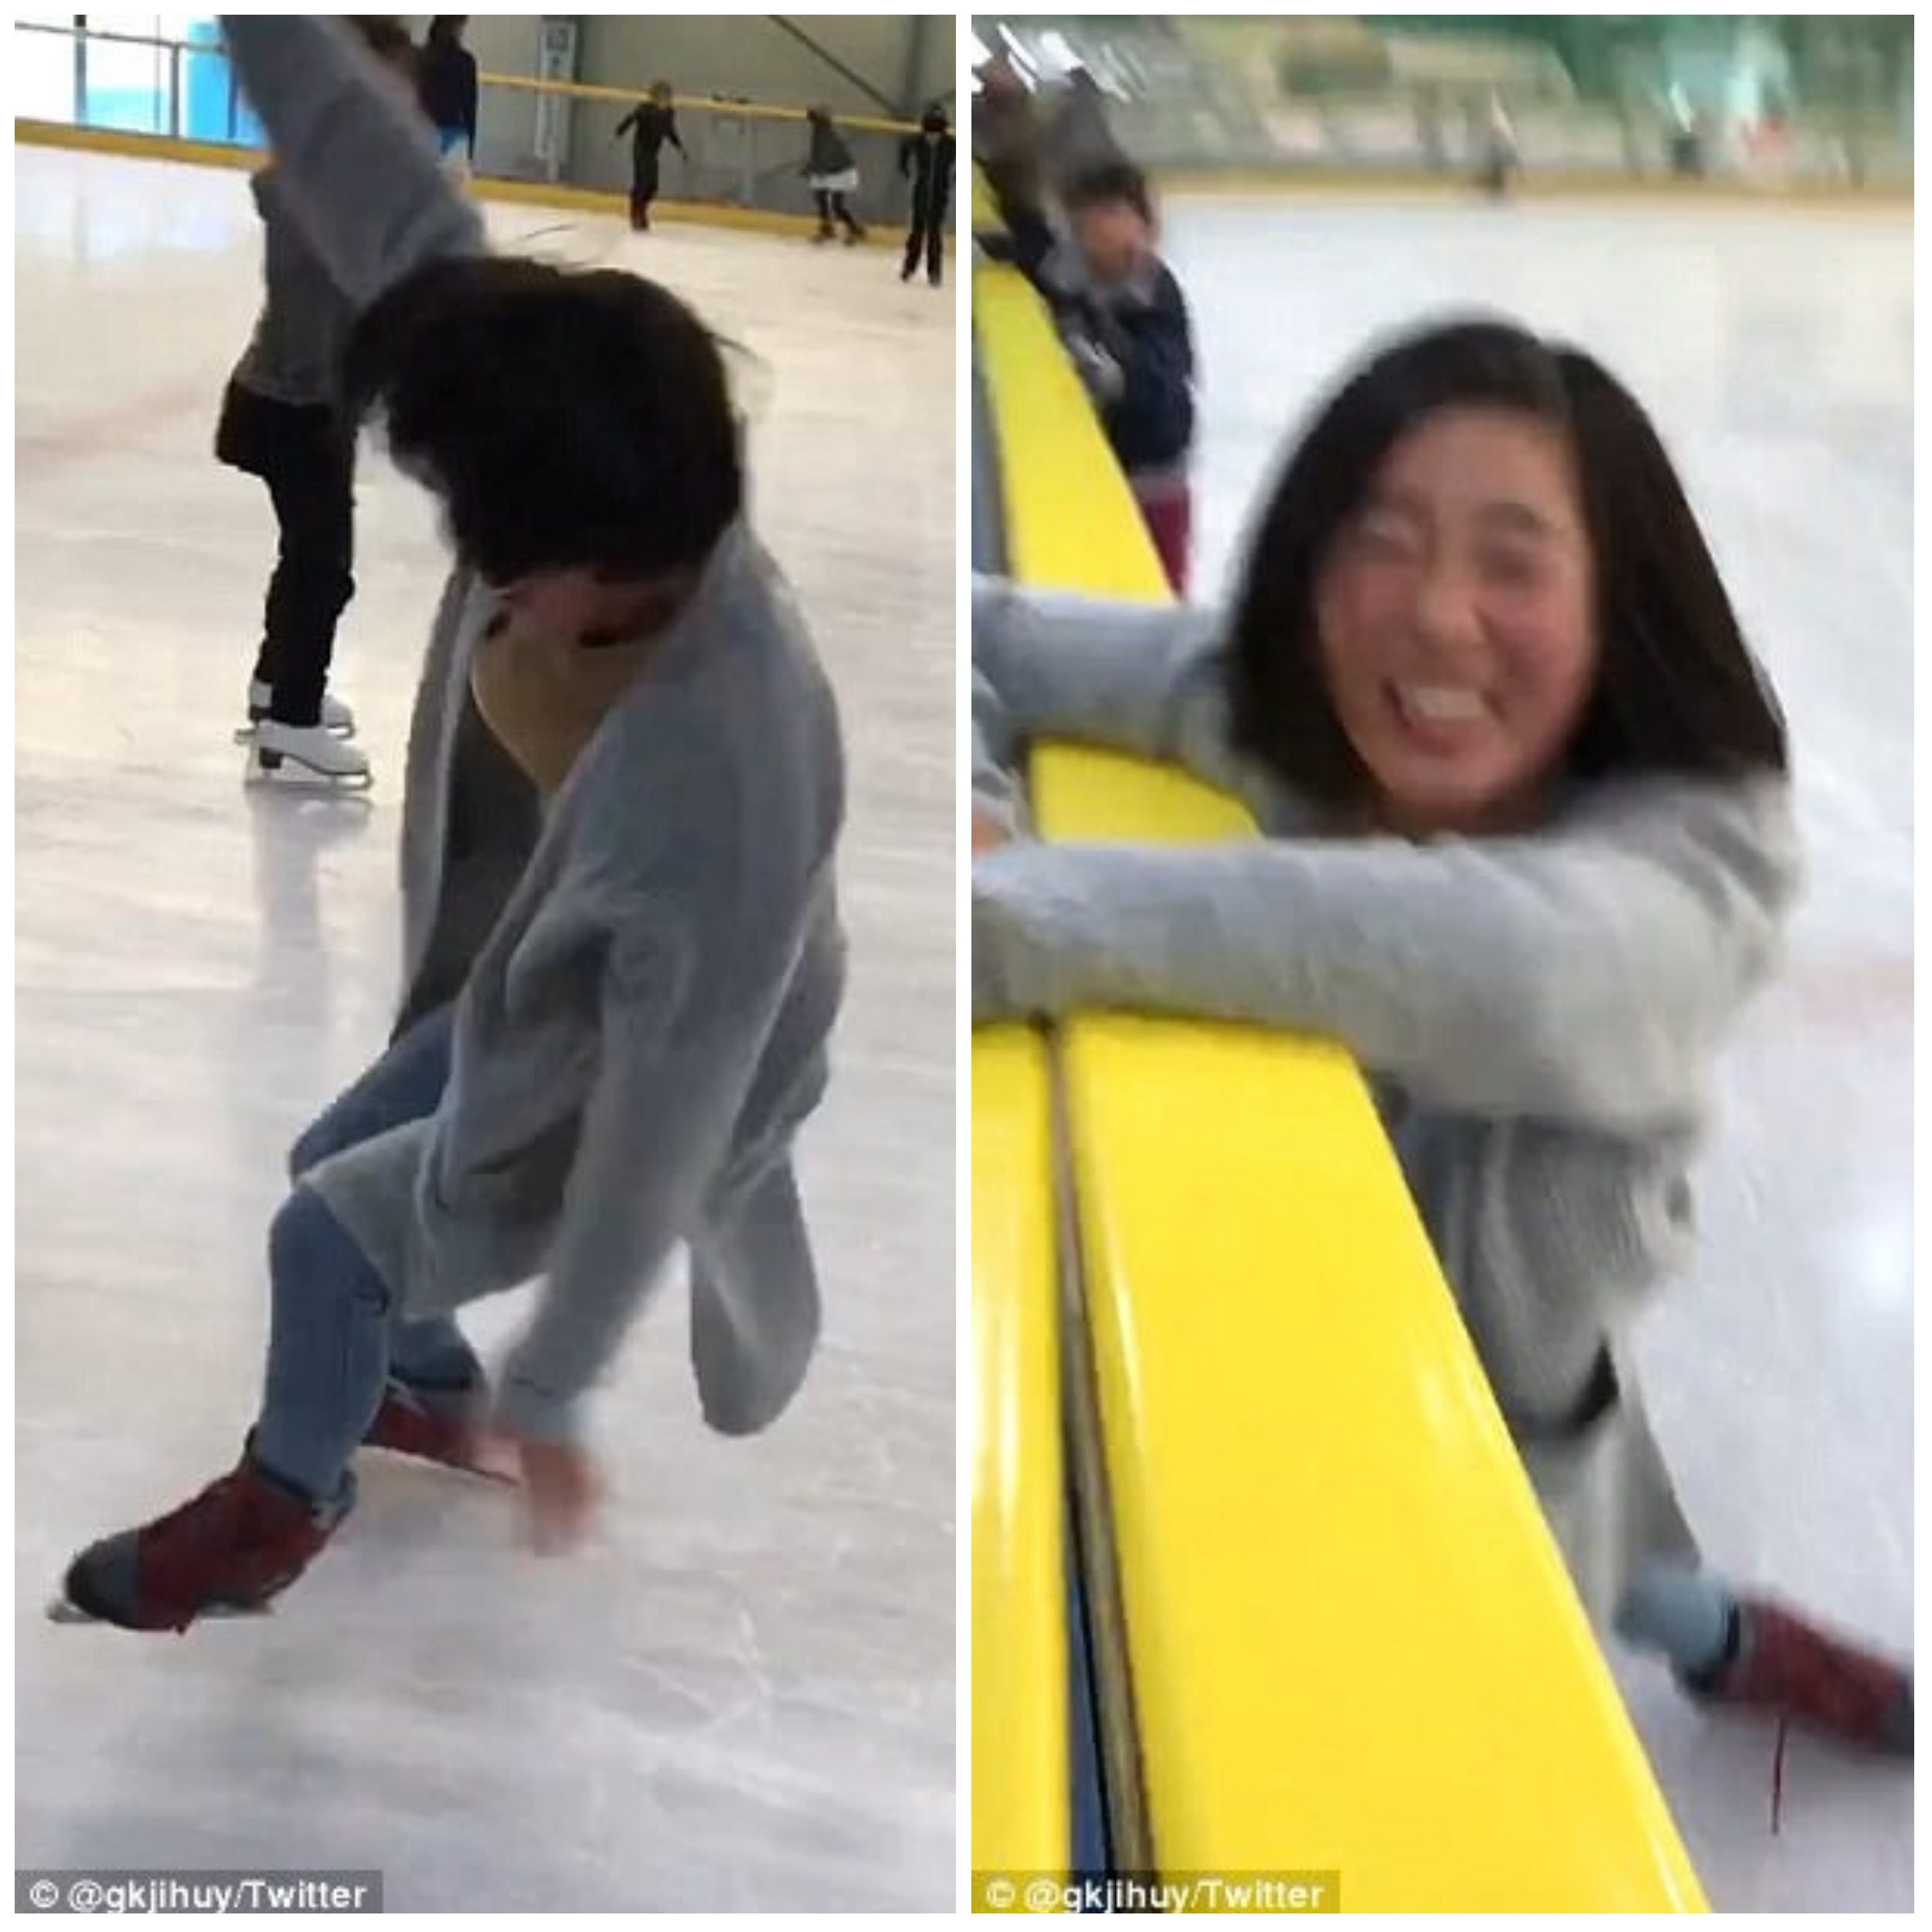 japanese teen s epic drawn out tumble while ice skating